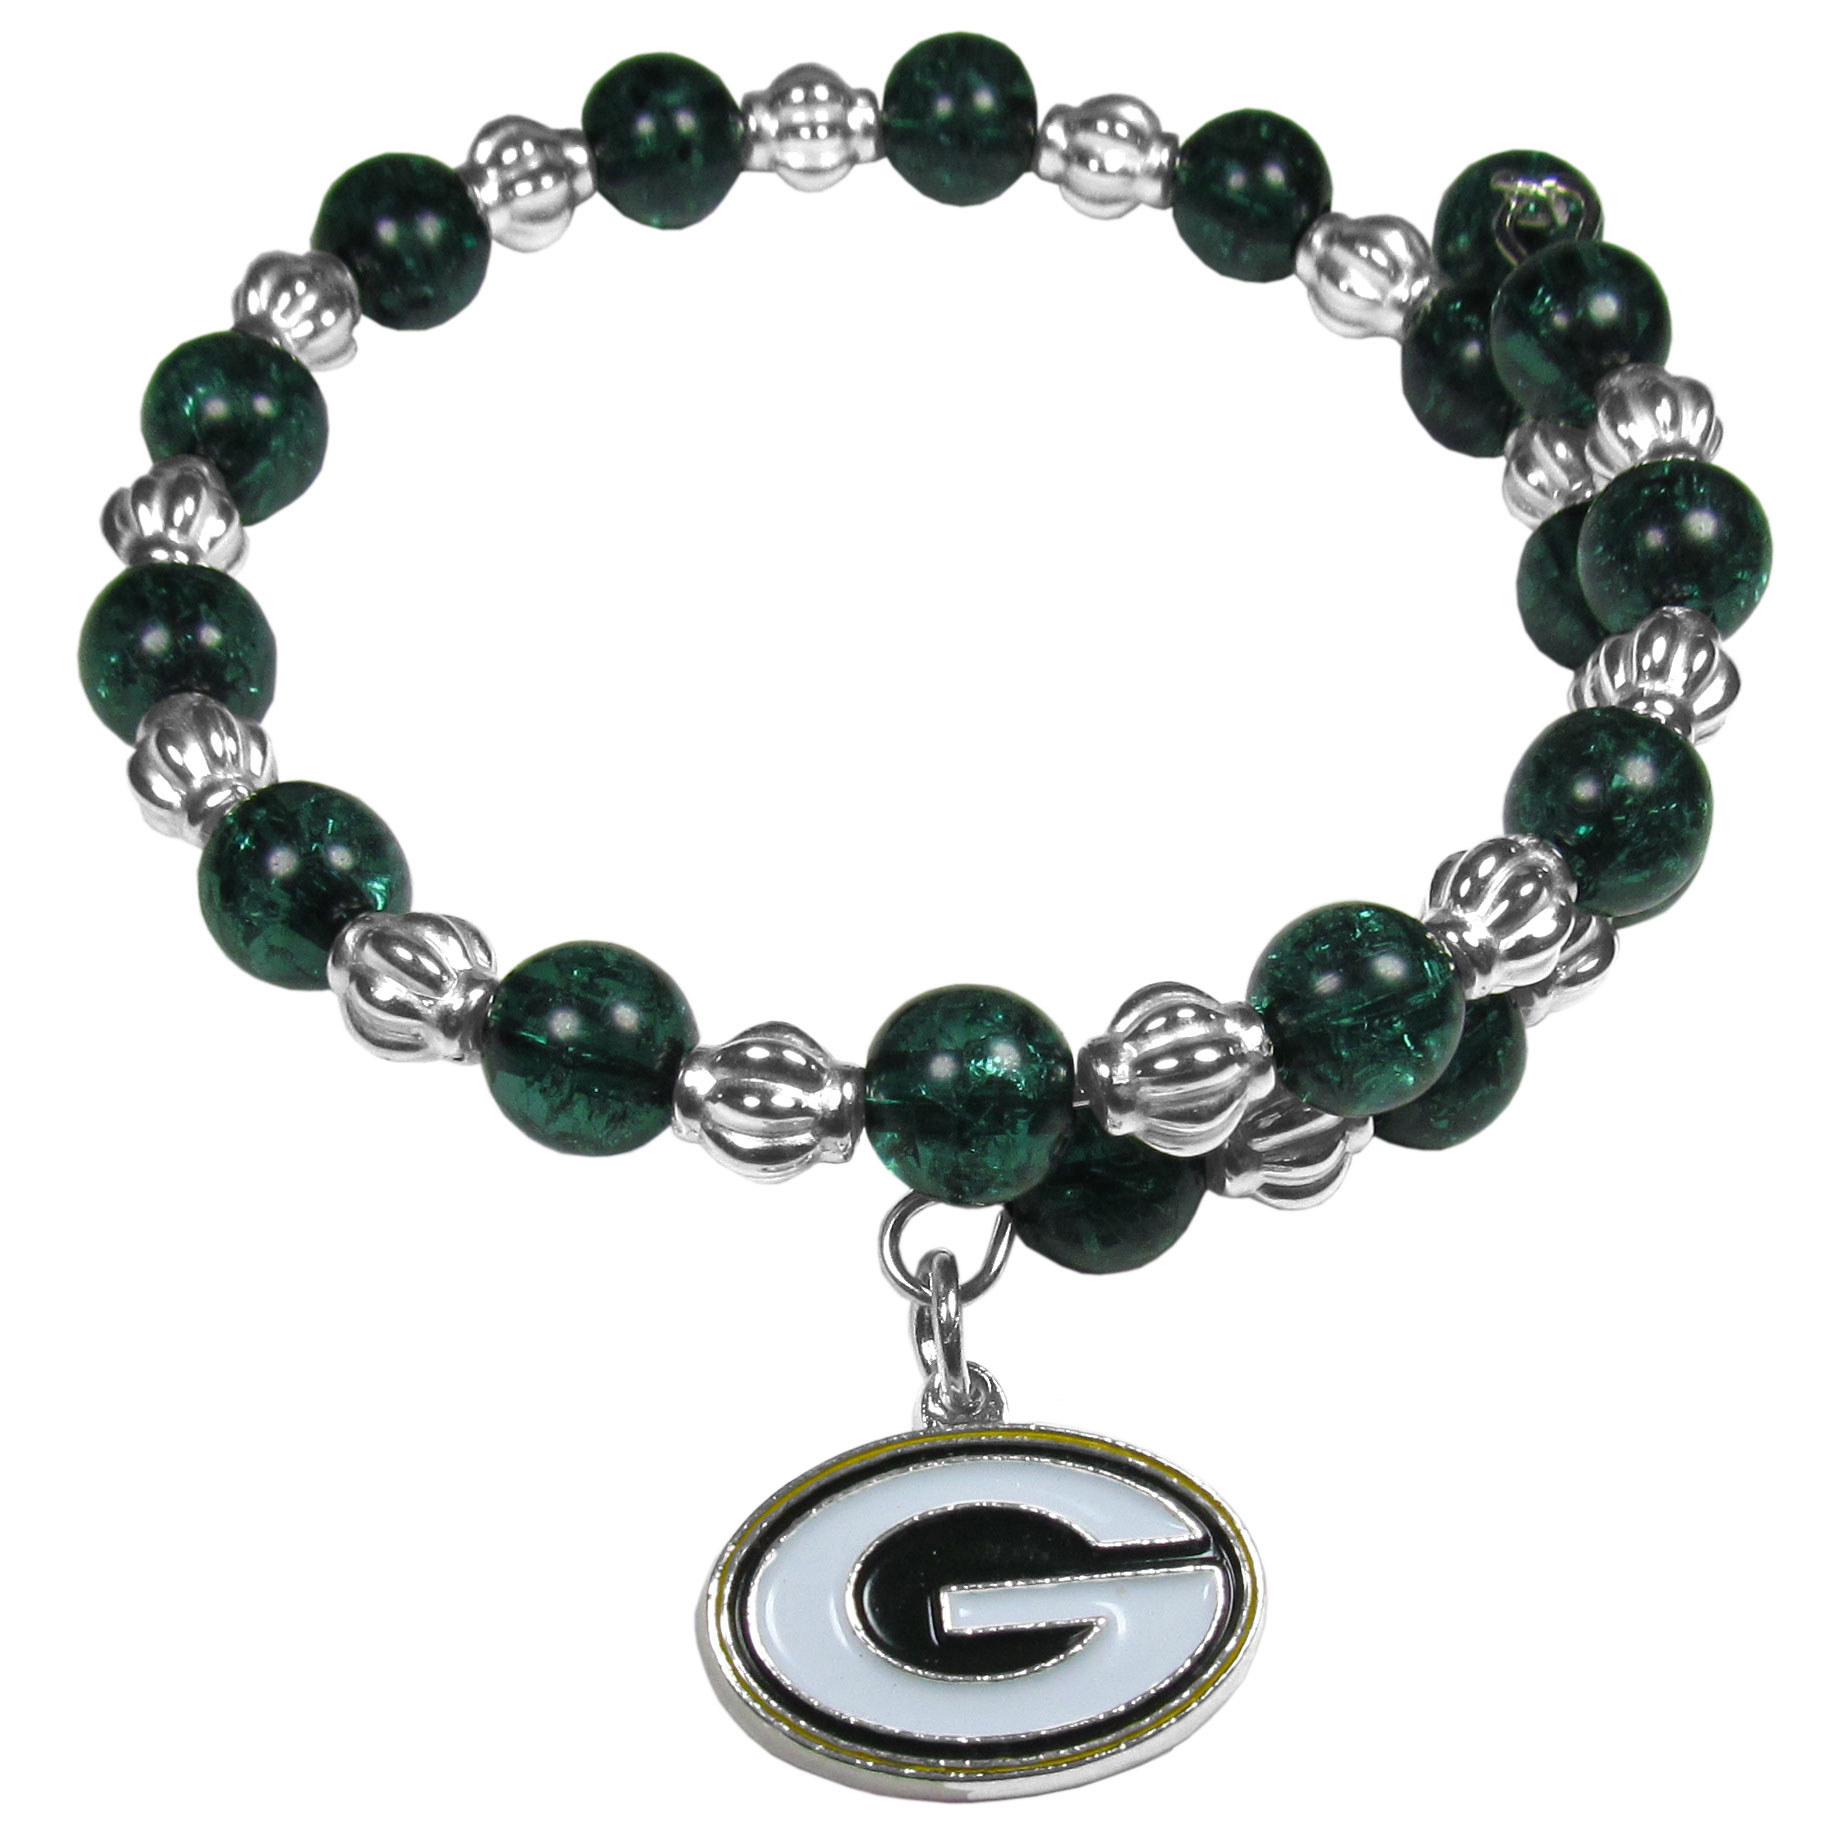 Green Bay Packers Bead Memory Wire Bracelet - Our Green Bay Packers memory wire bead bracelet is trendy way to show off your love of the game. The double wrap bracelet is completely covered in 7.5 mm crystals that are broken up with silvertoned beads creating a designer look with a sporty twist. The bracelet features a fully cast, metal team charm that has expertly enameled team colors. This fashion jewelry piece is a must-have for the die-hard fan that chic look that can dress up any outfit.